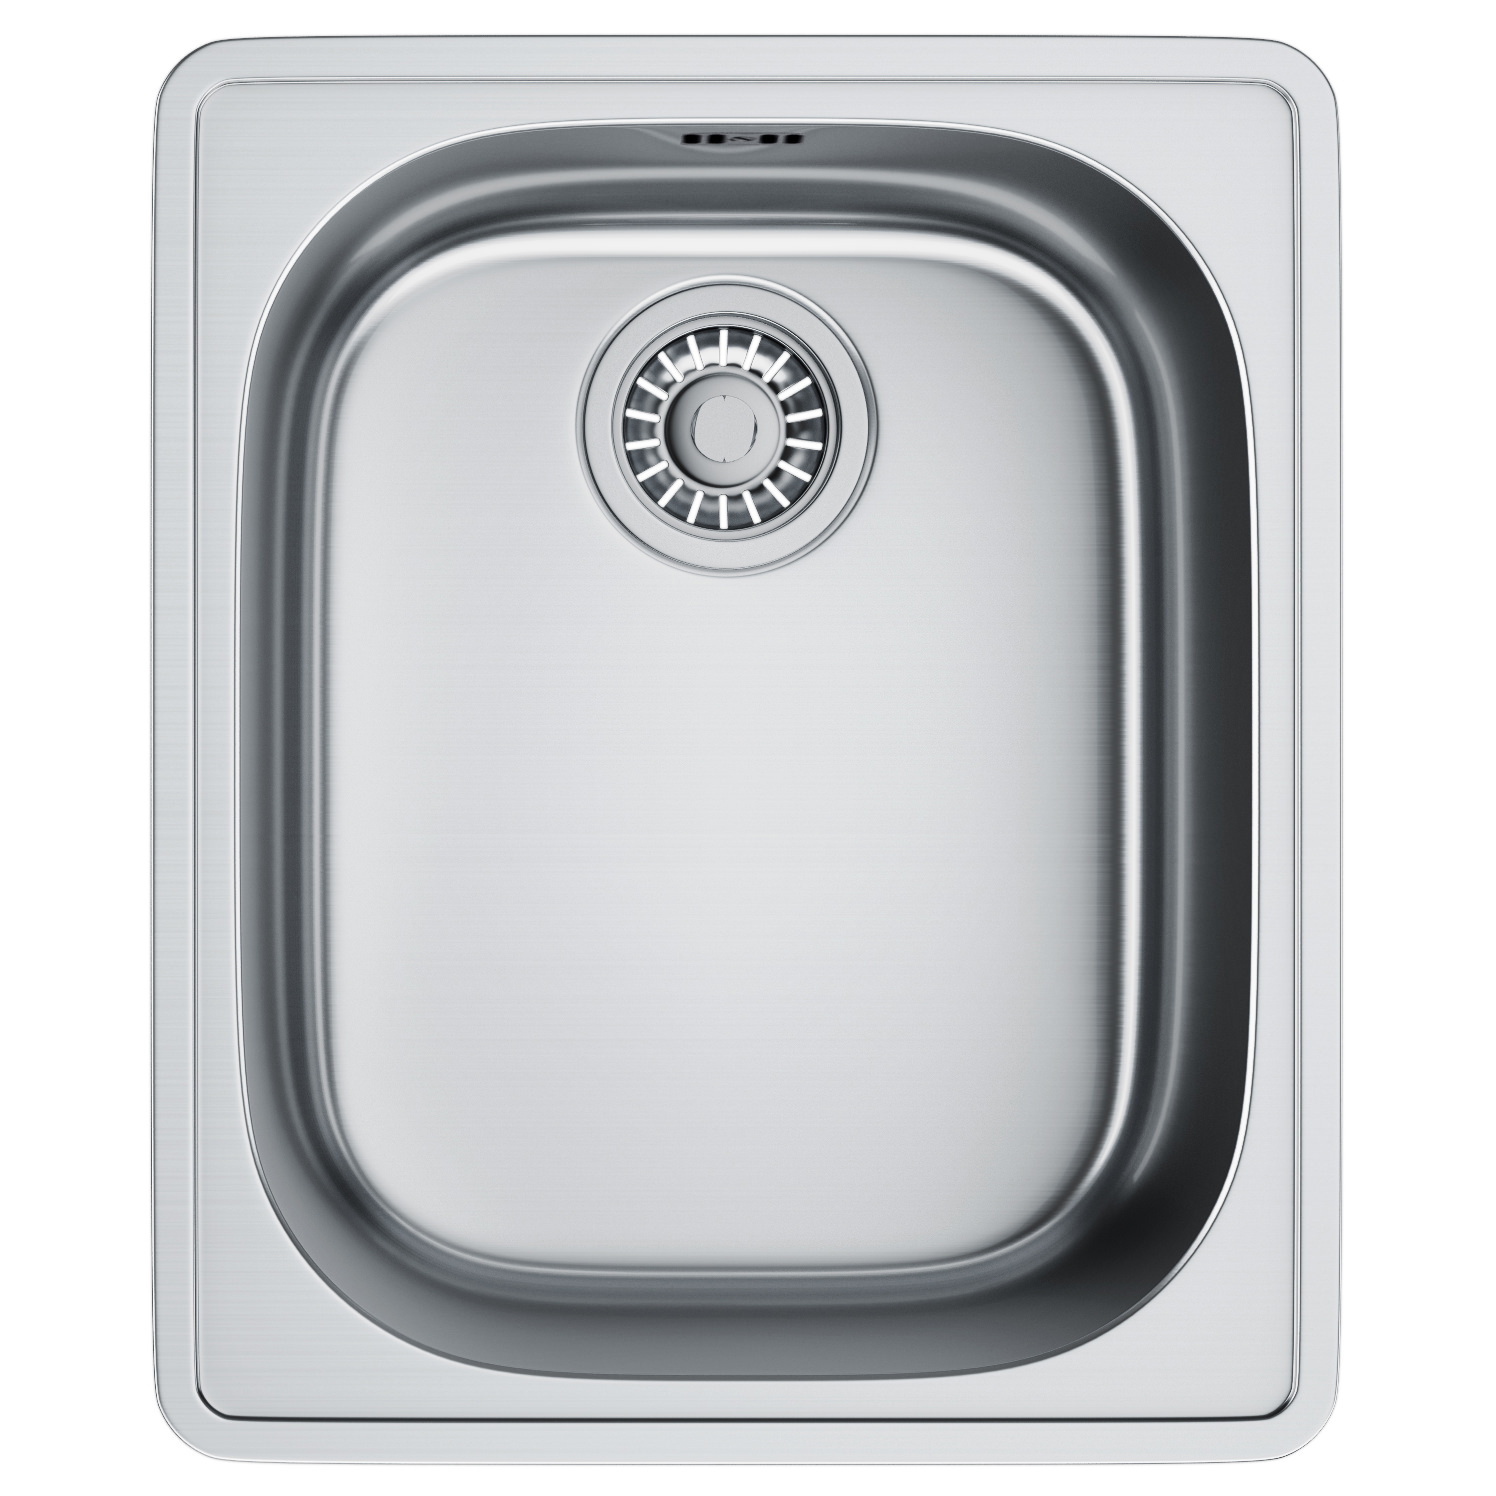 Compact Plus CPX P 610 Stainless Steel Inset Kitchen Sink